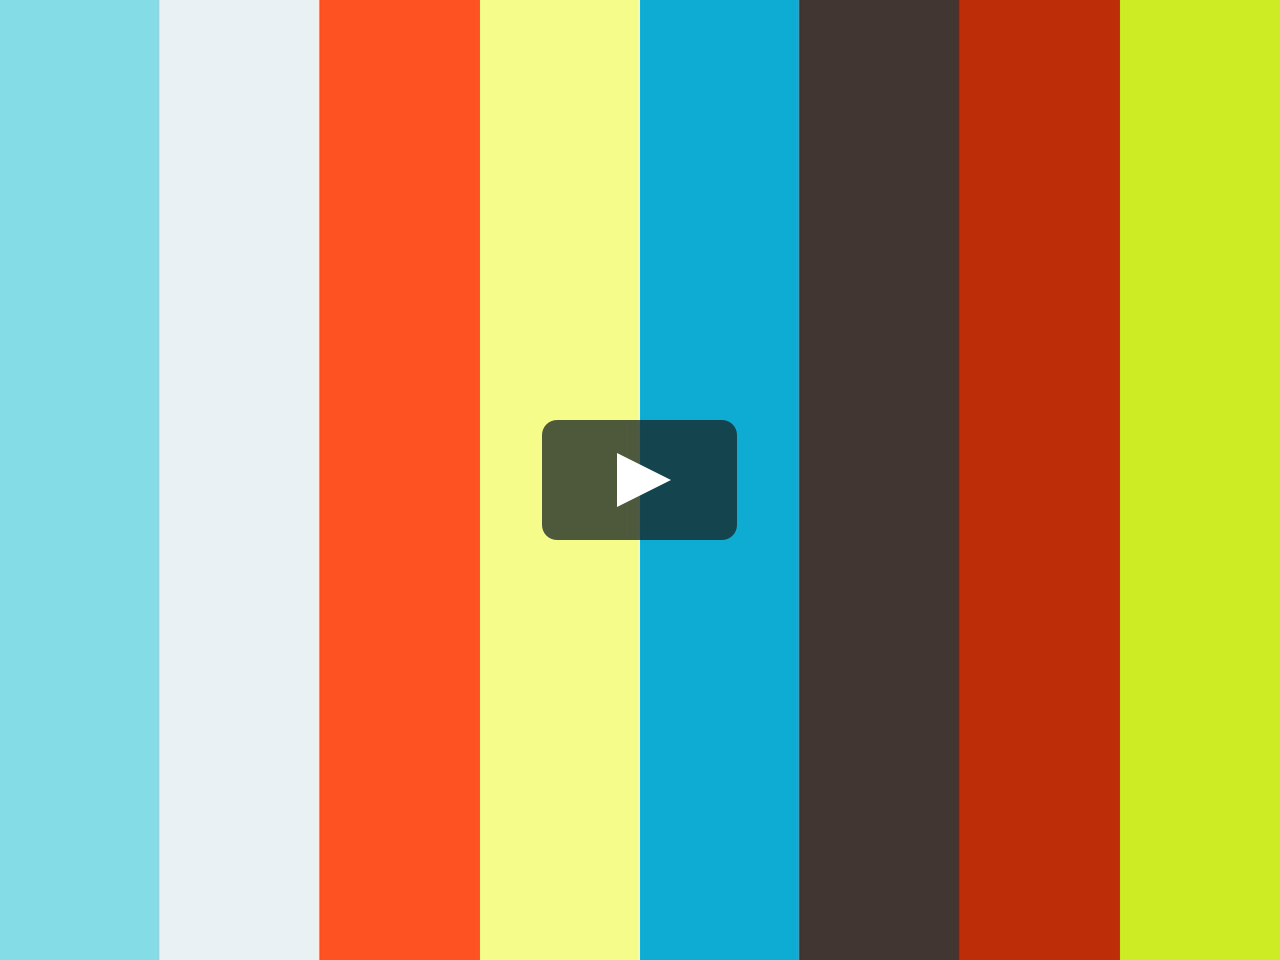 Workbooks cutting edge workbook : Cutting Edge 3e: Intermediate Workbook: Unit 12: Recording 1 on Vimeo